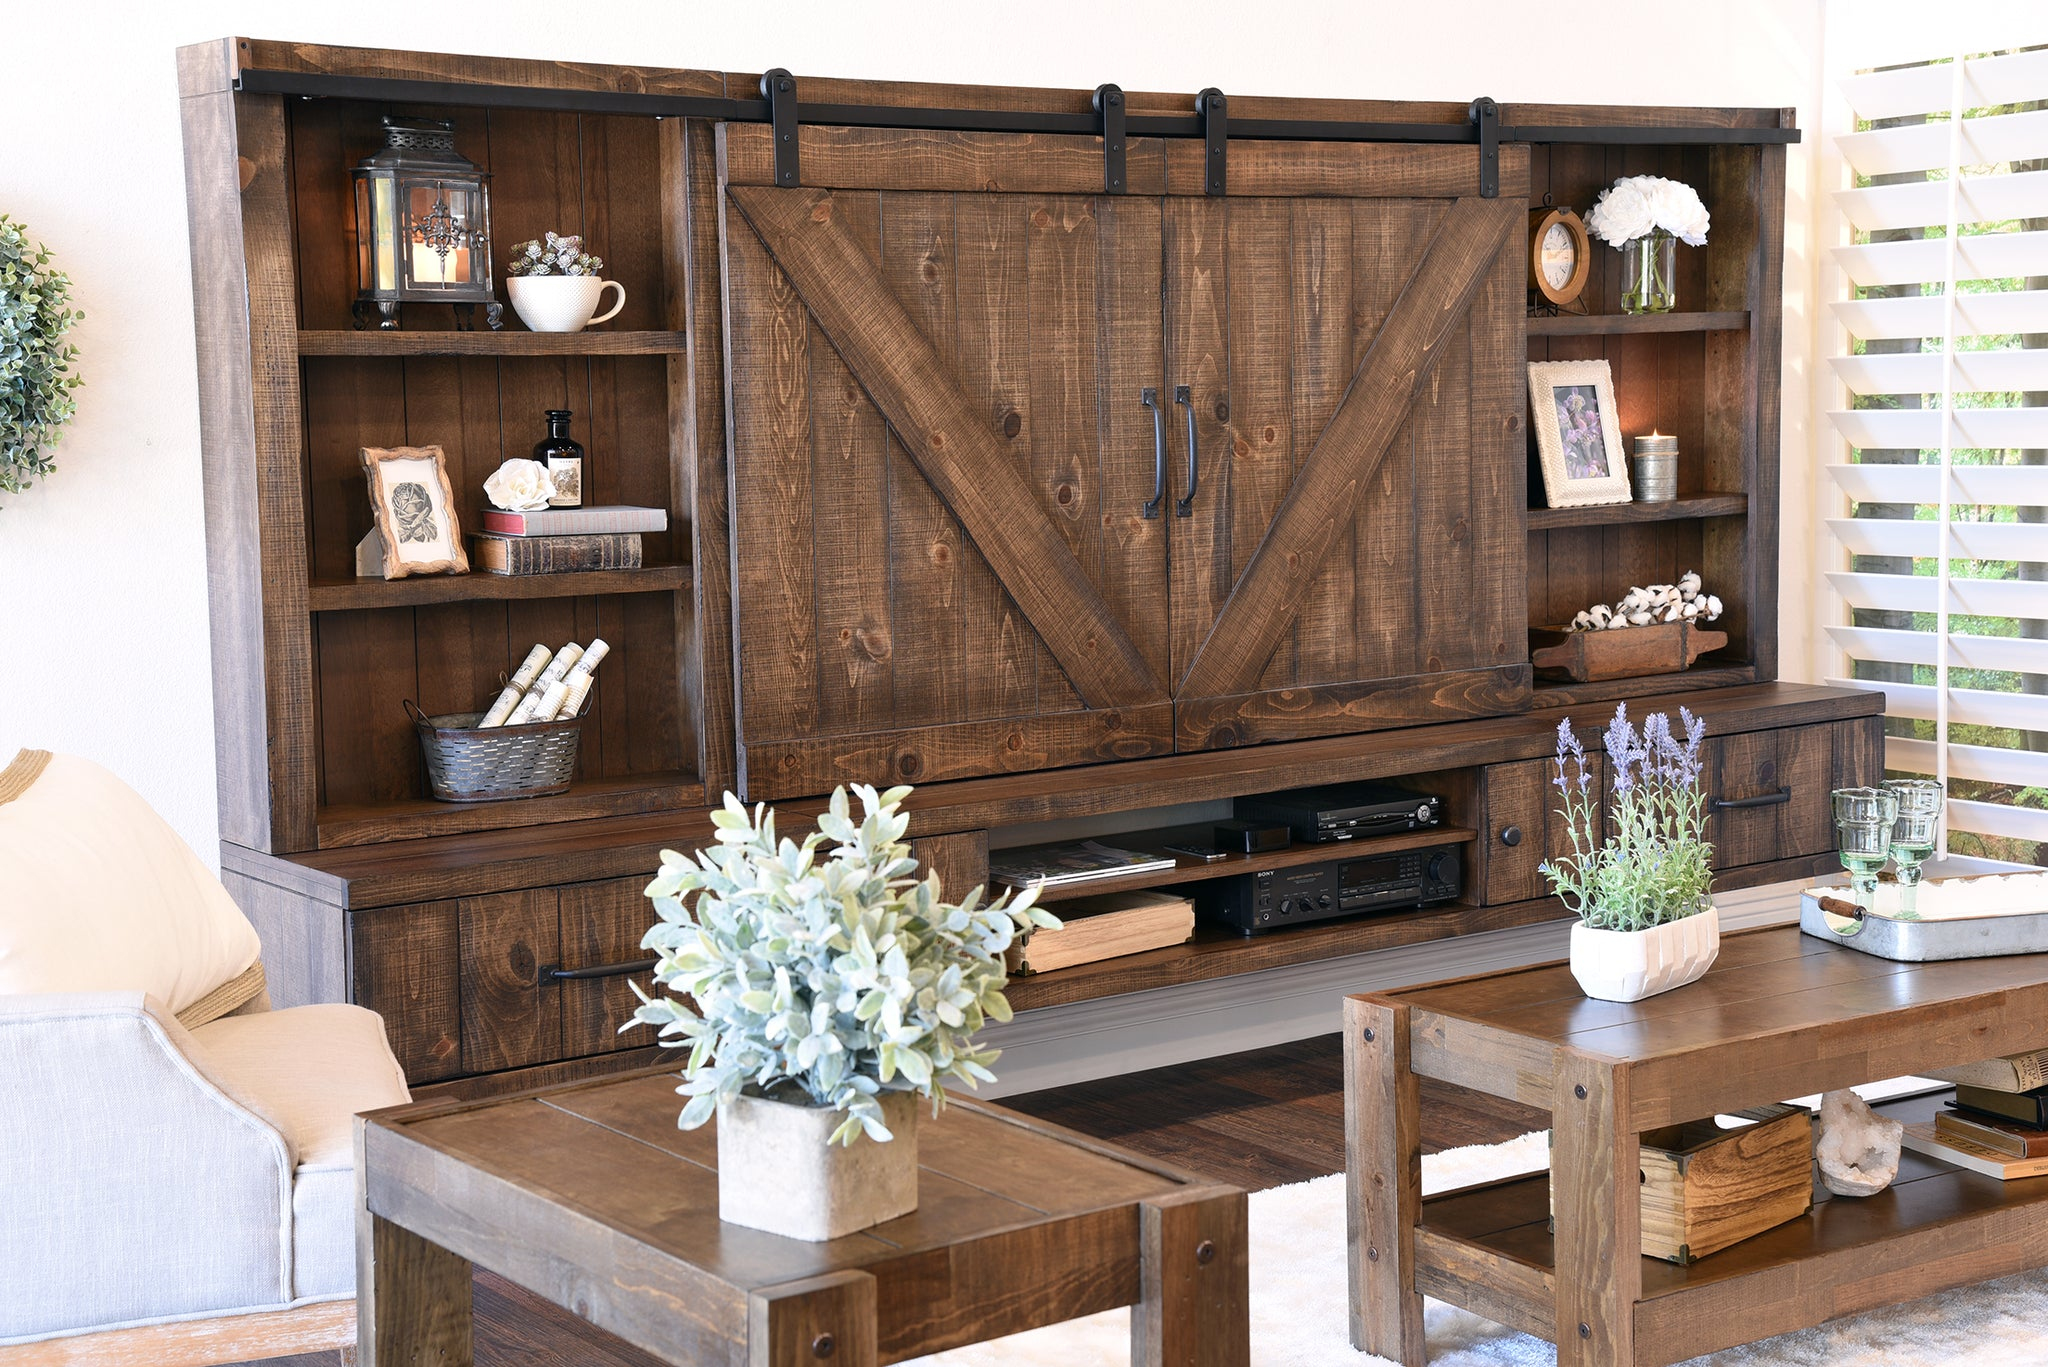 Farmhouse Barn Door Entertainment Center Floating TV Stand - Spice ...